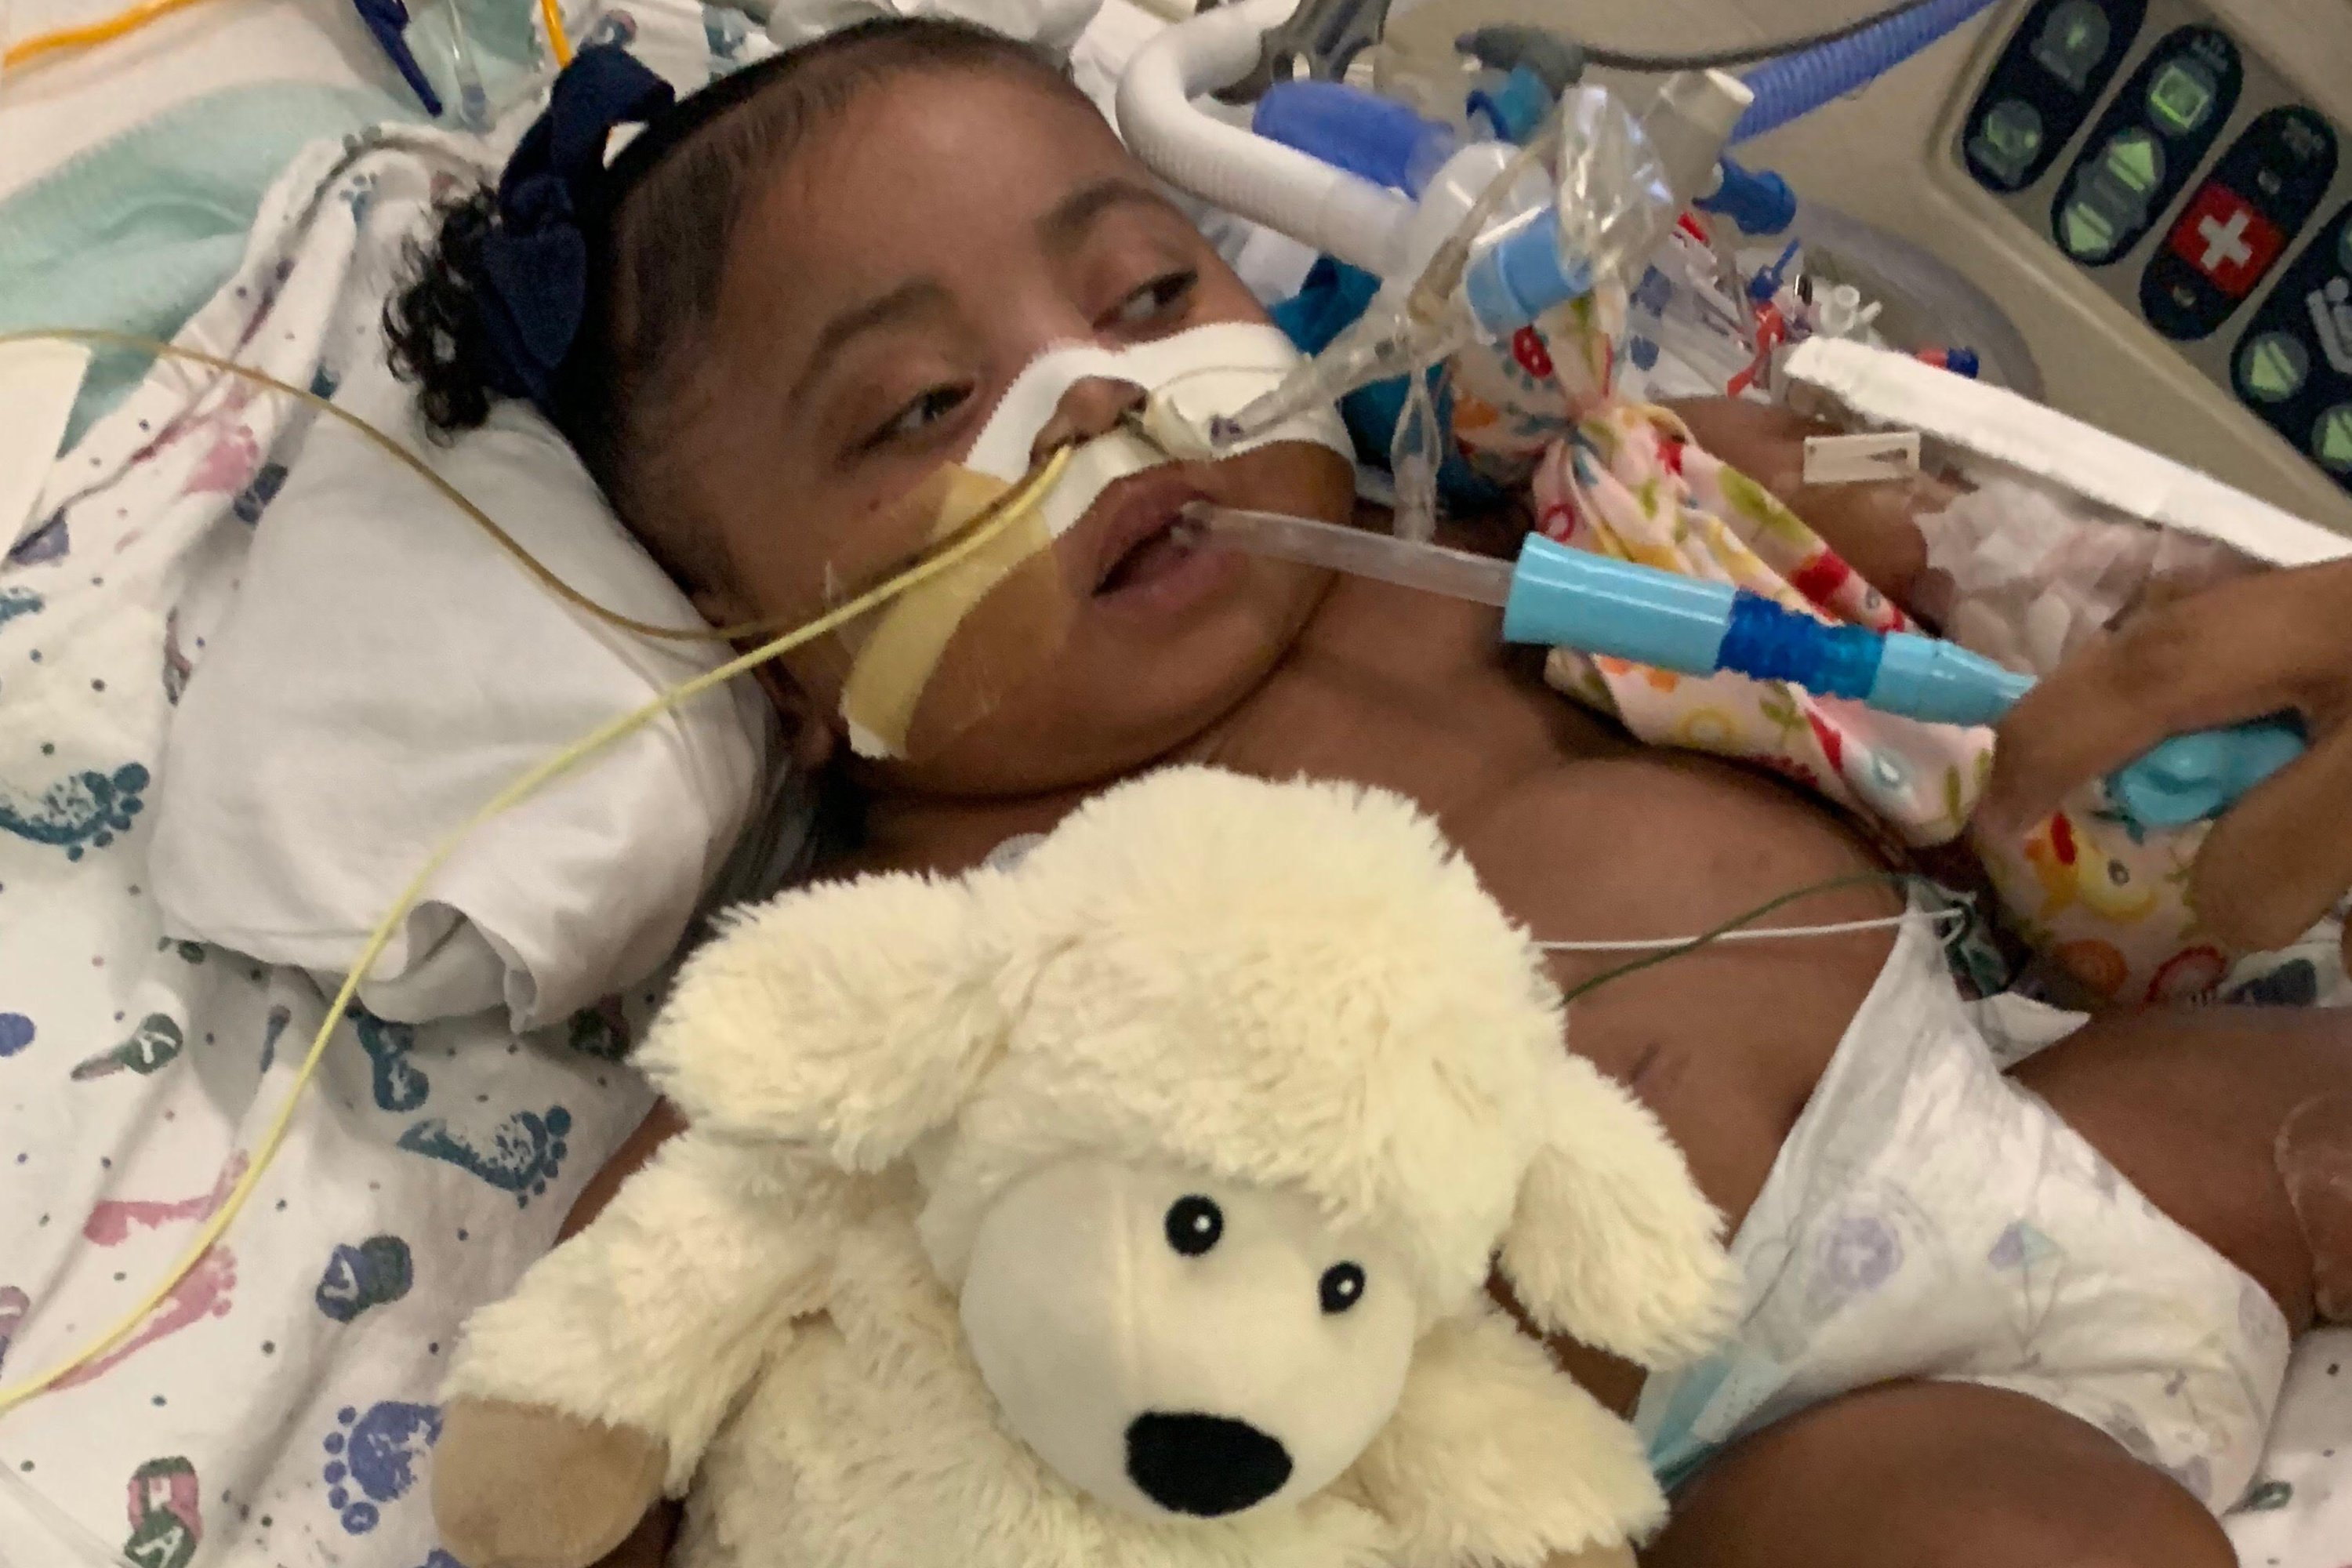 Texas judge: Hospital can remove baby from life support